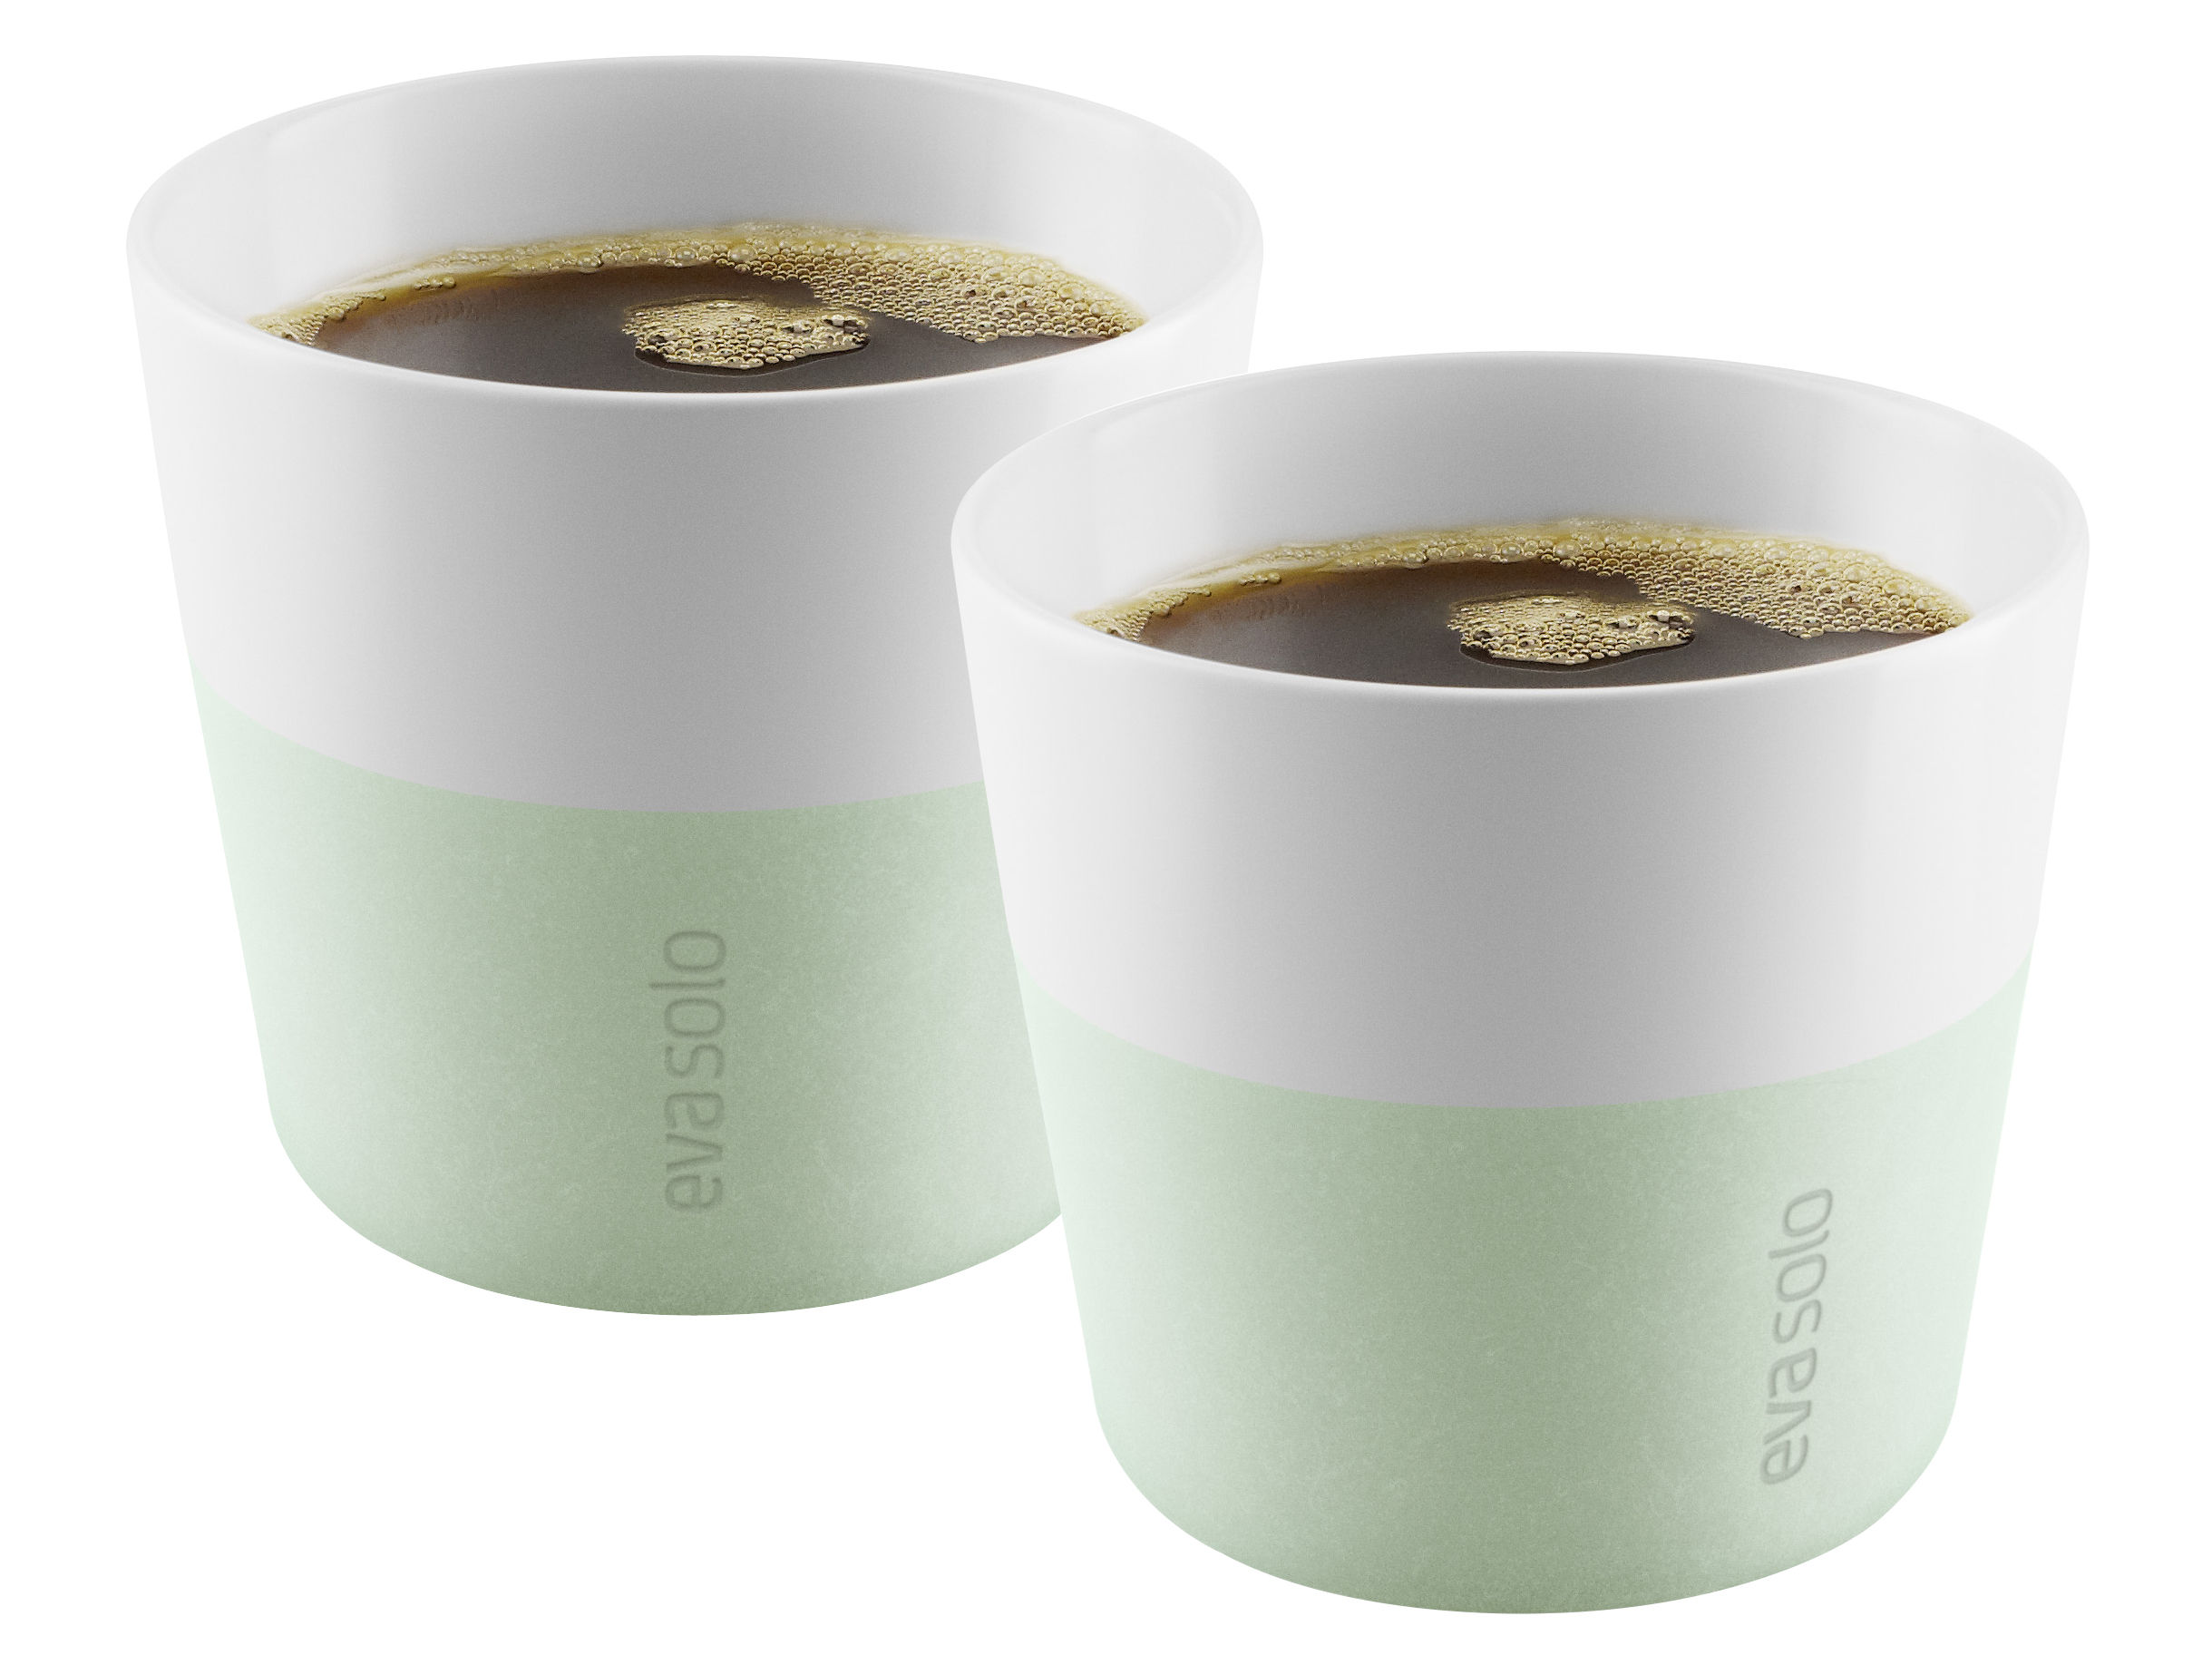 Tableware - Coffee Mugs & Tea Cups - Lungo Cup - / Set of 2 - 230 ml by Eva Solo - Eucalyptus green - China, Silicone